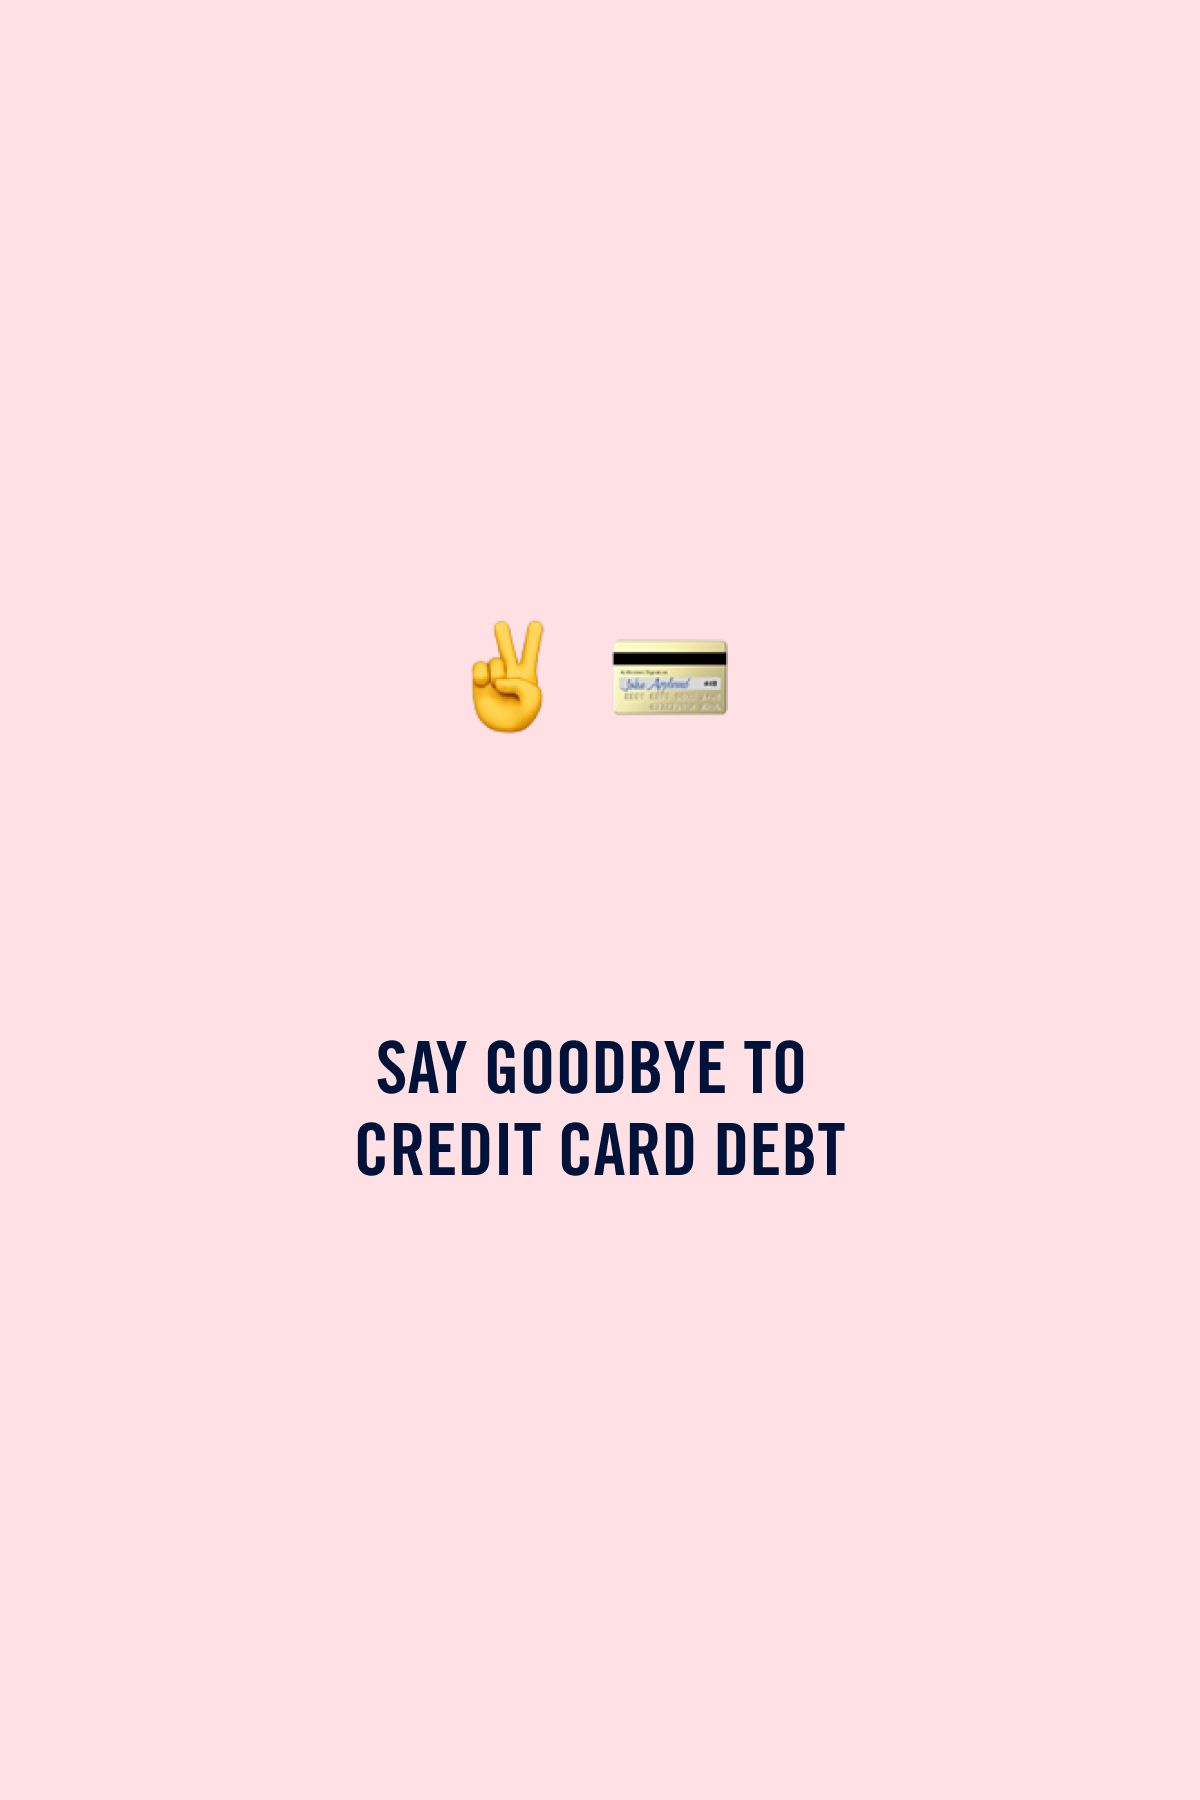 Goodbye Credit Card Debt Paying Off Credit Cards Credit Card Payoff Plan Inspirational Quotes